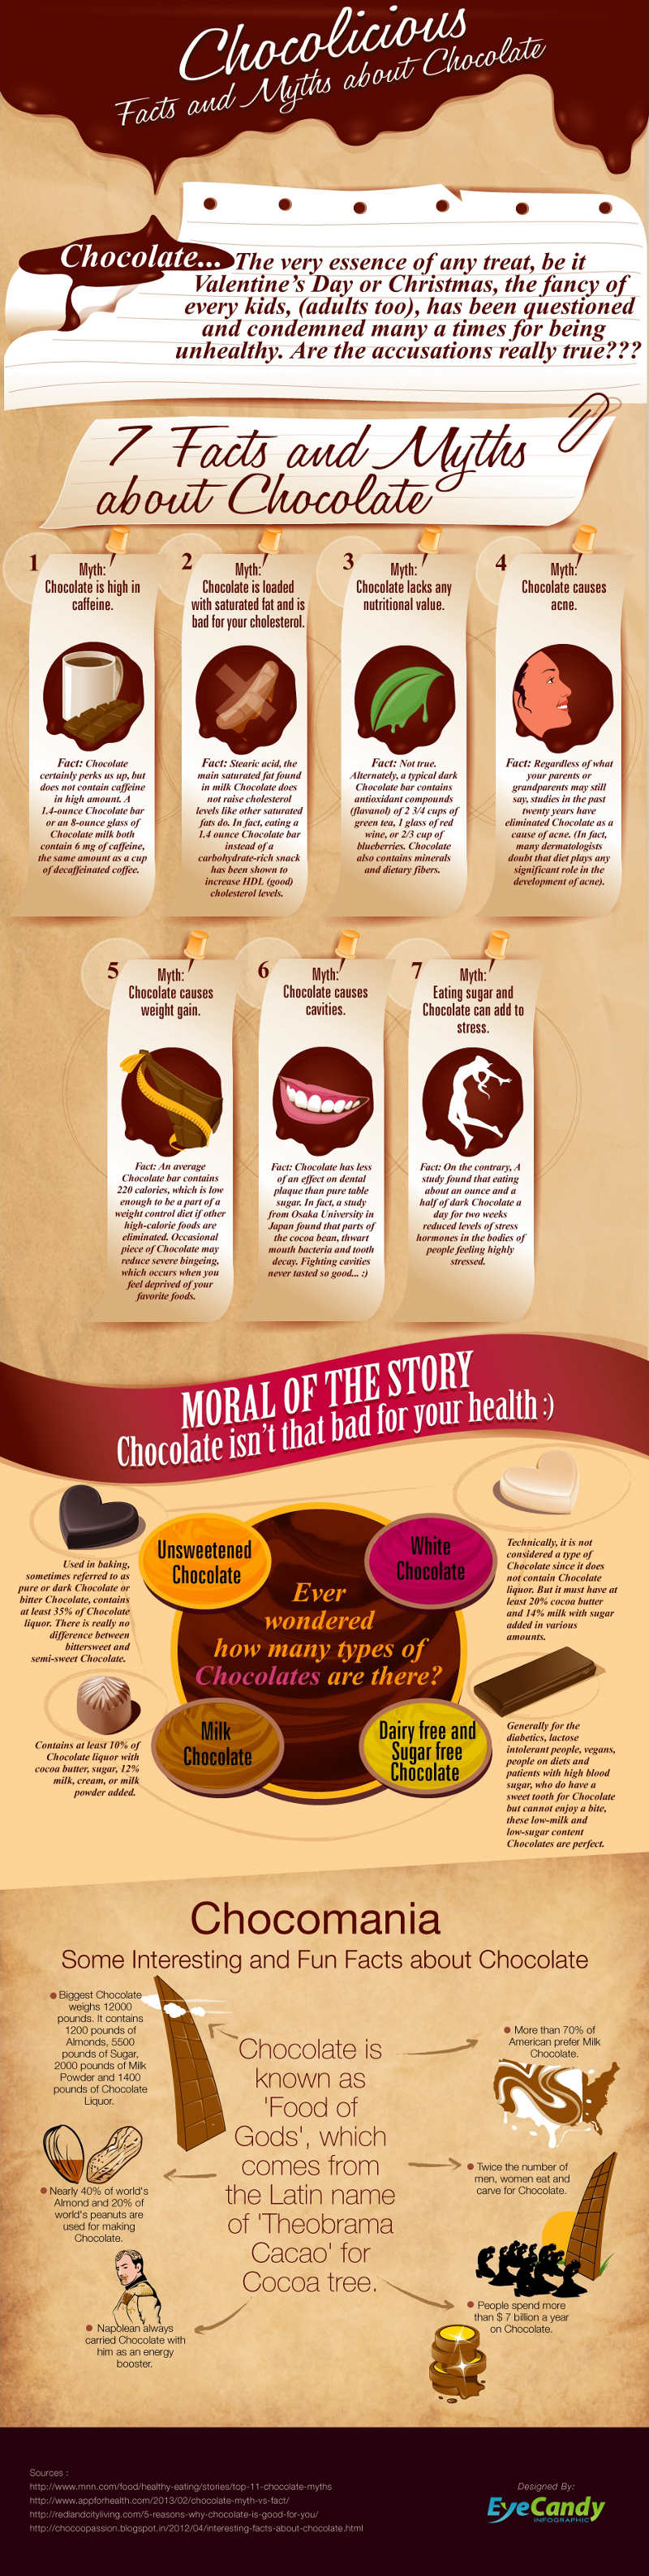 Common Chocolate Myths